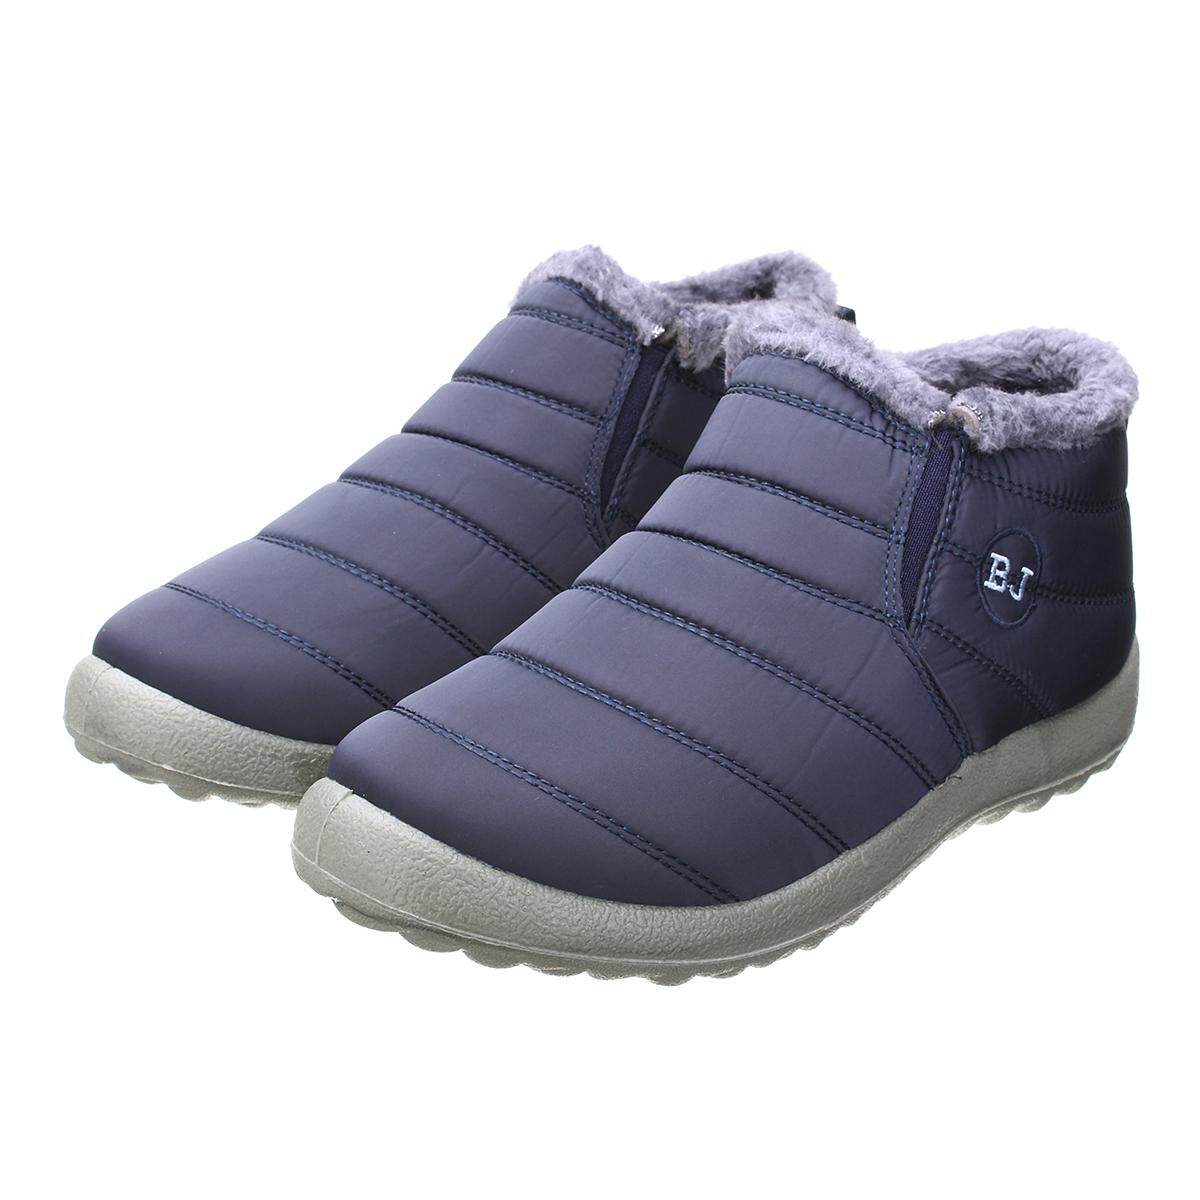 042500220 HOT Women's Winter Warm Fabric Fur-lined Slip On Ankle Snow Boots Sneakers  Shoes BLUE